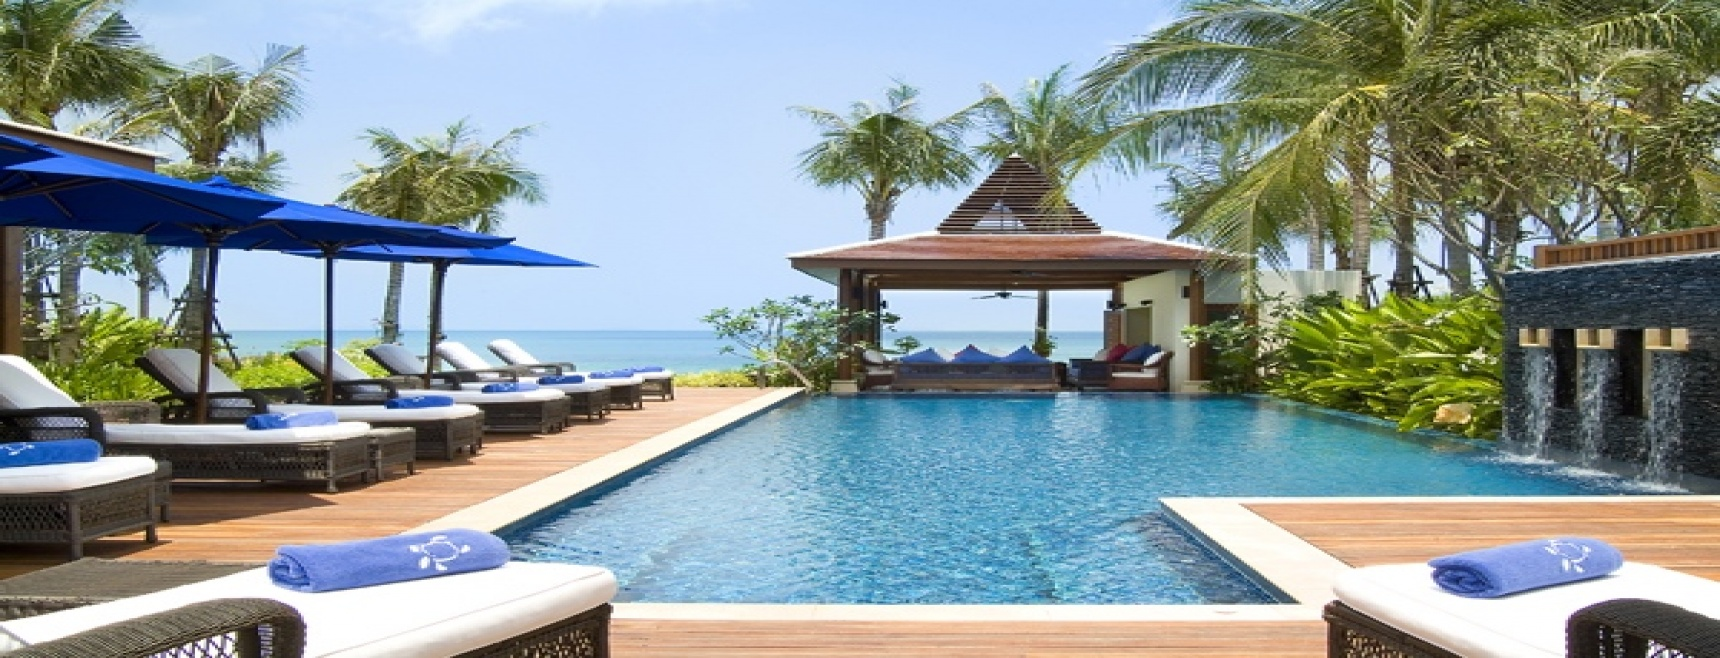 Simply providing the ultimate in luxury tropical island living